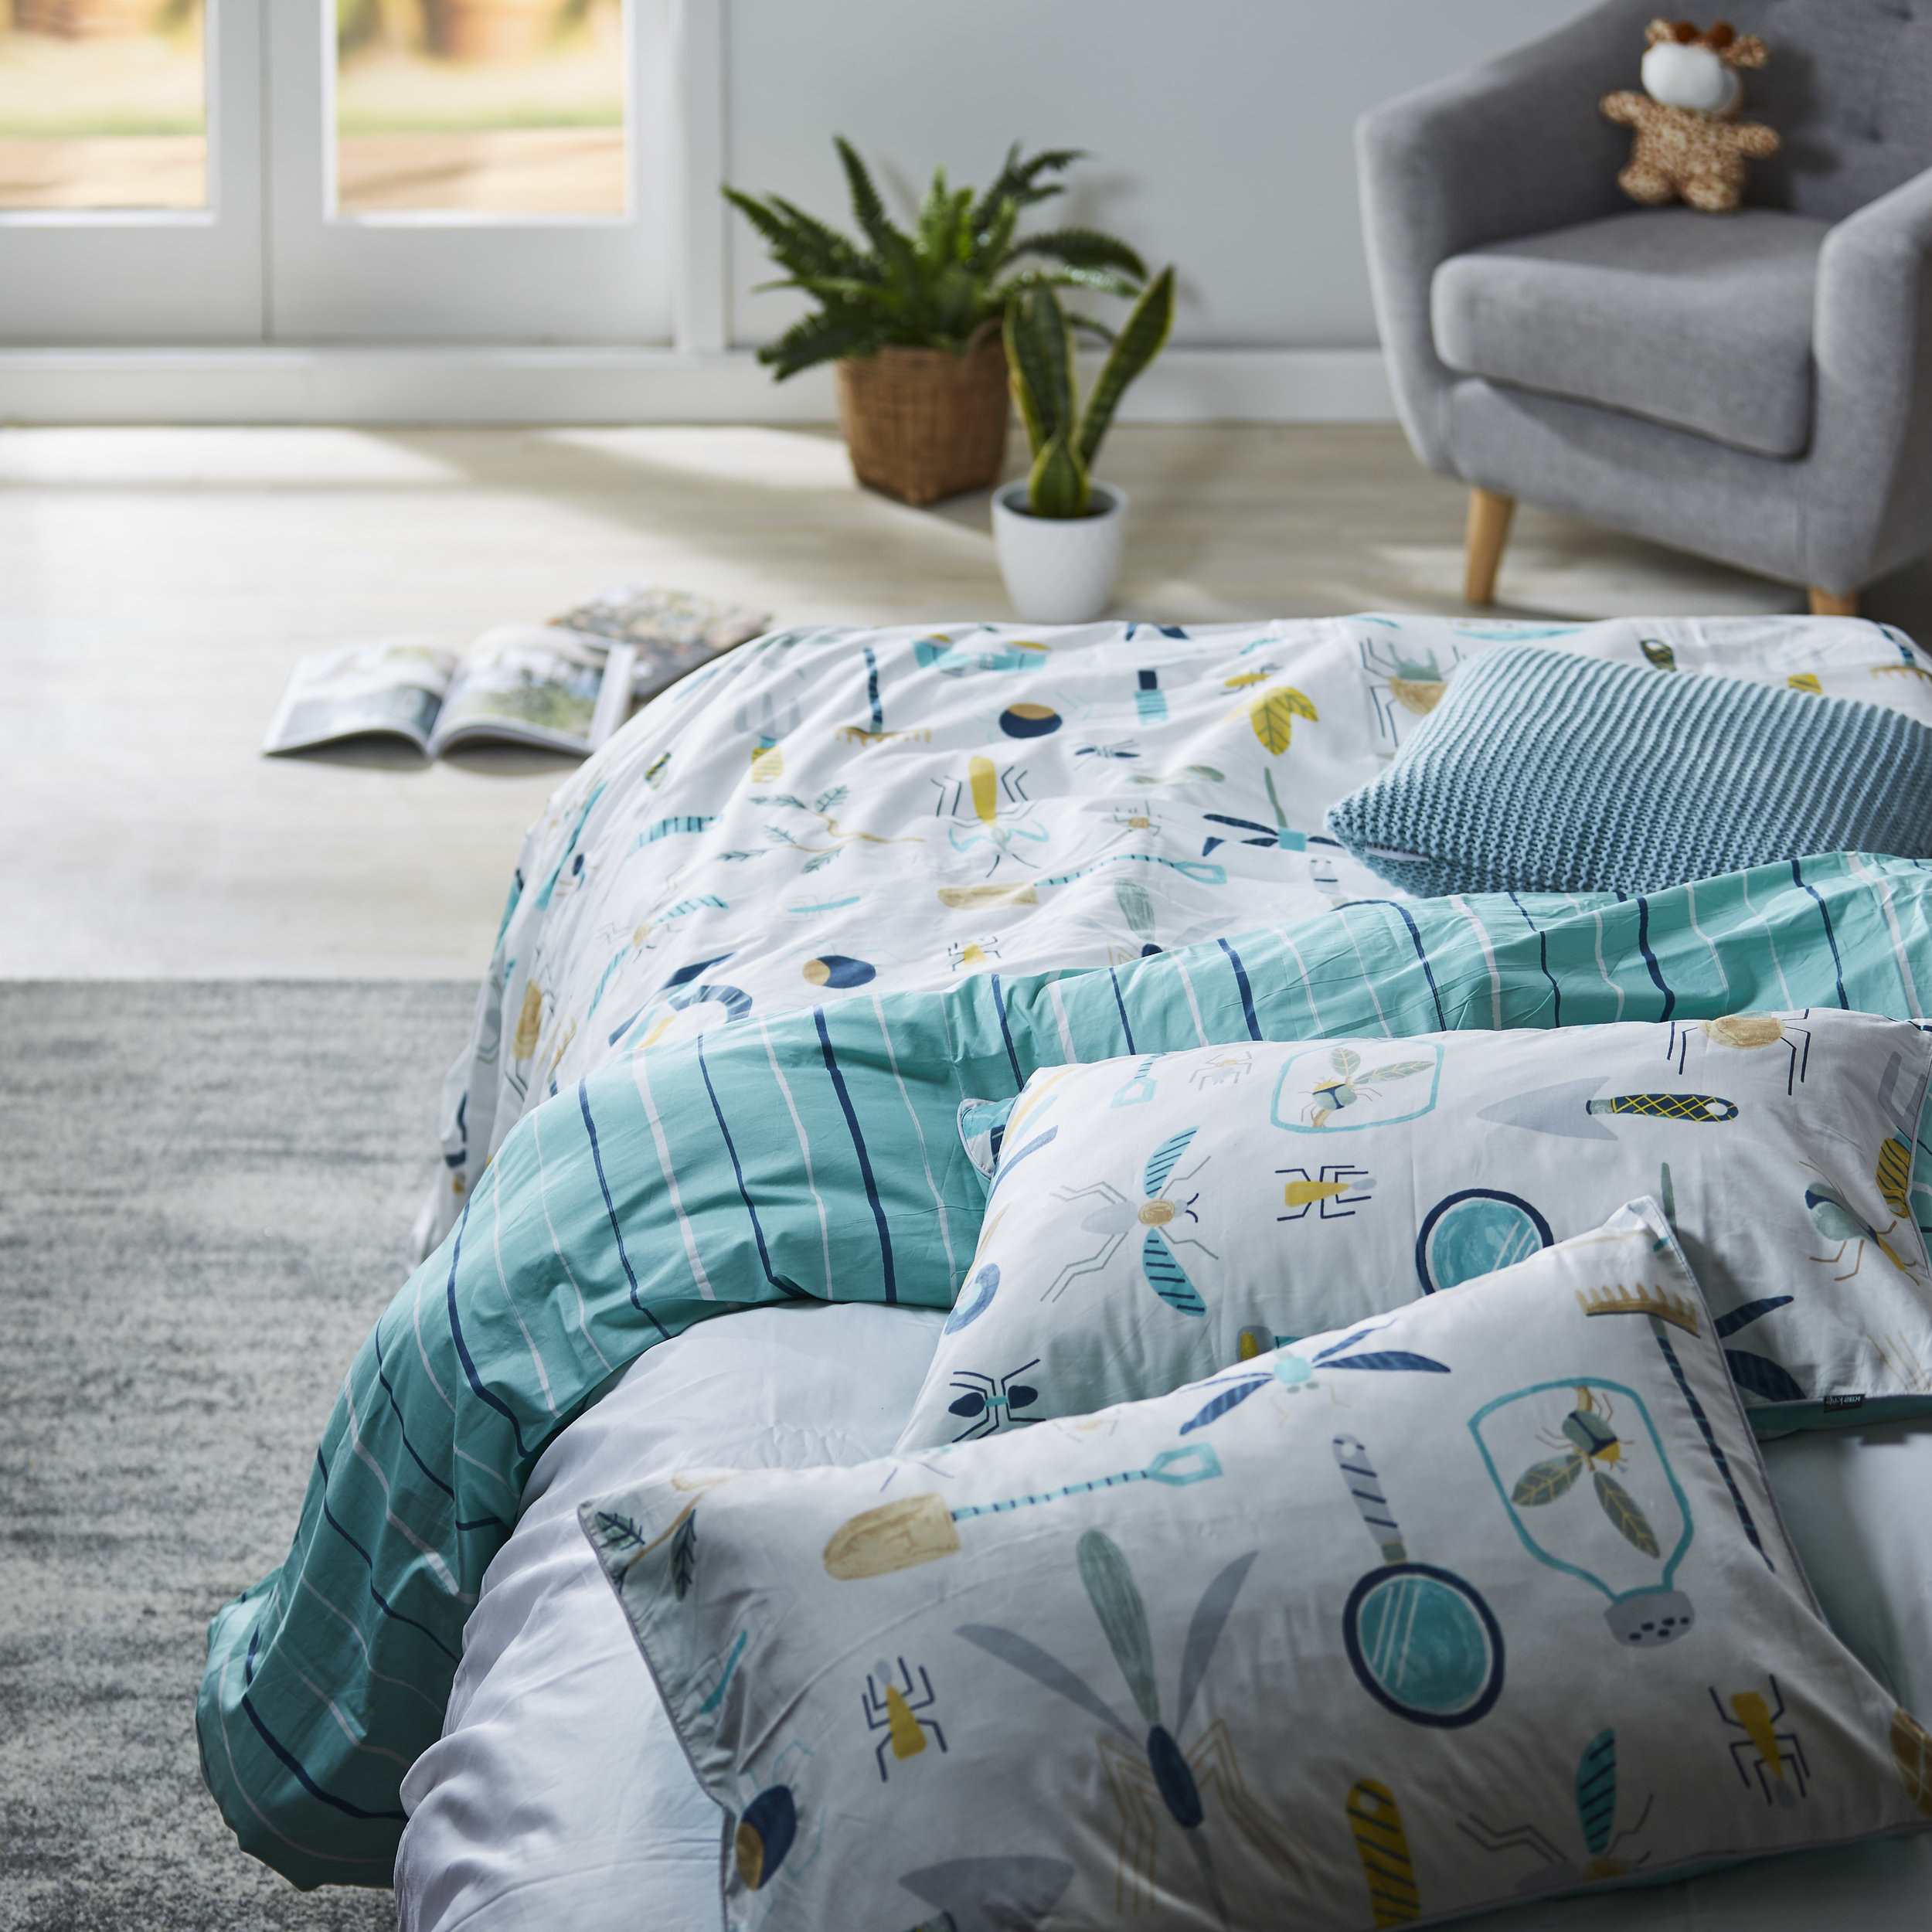 1076330001_Duvet_Set_KAS_Outdoor_Collect_Multi_SG.jpg